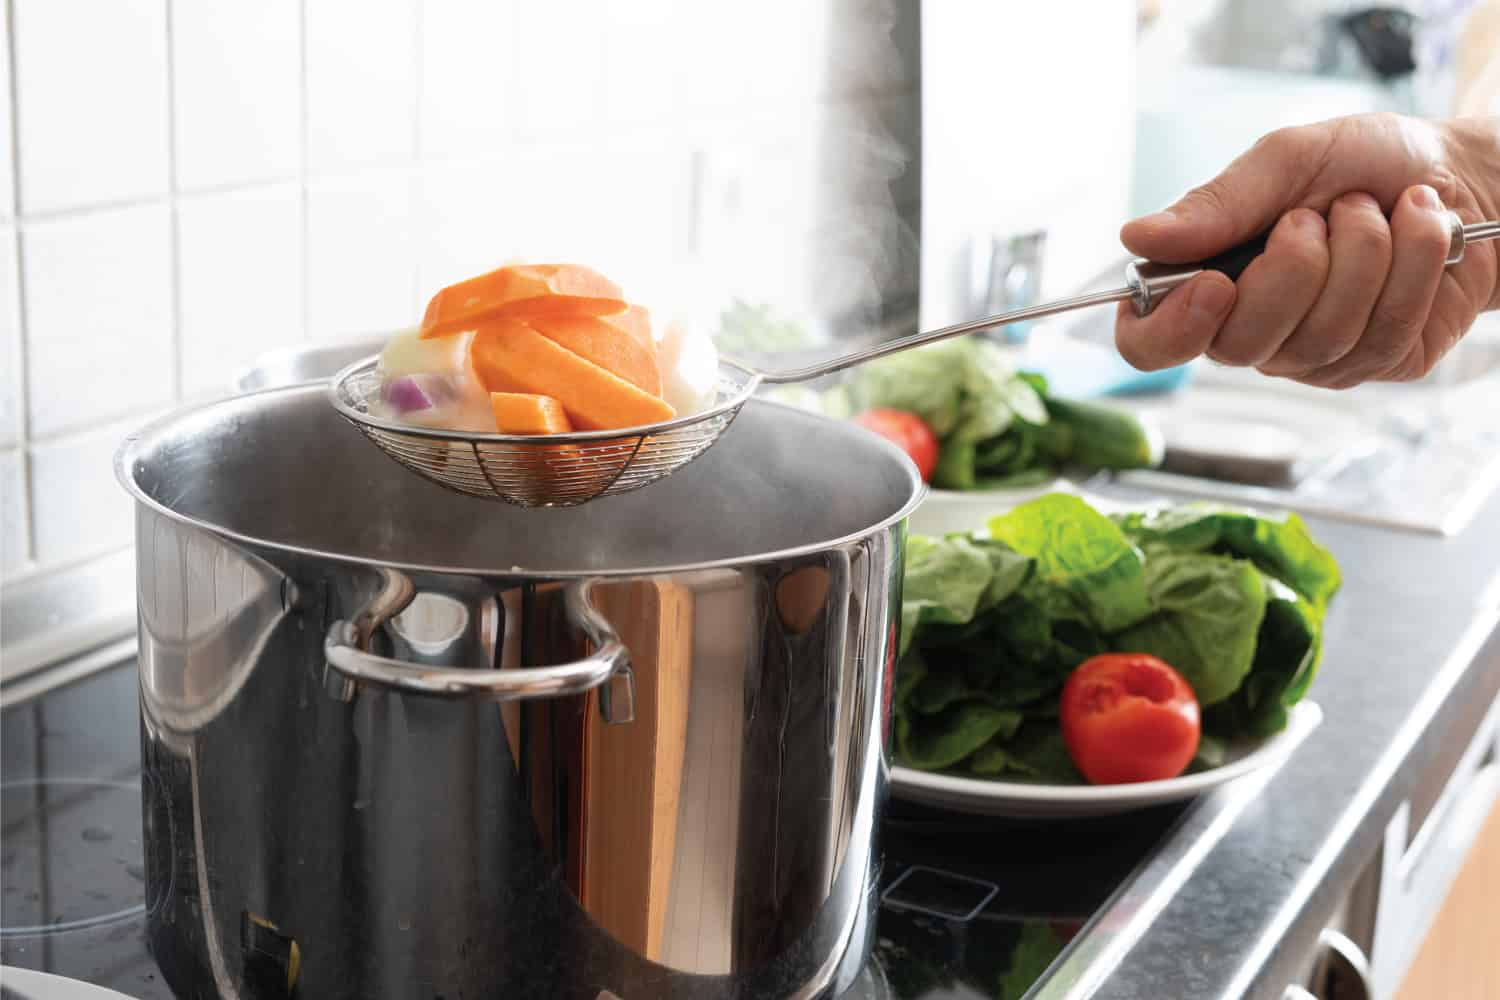 Blanching vegetables in large cooking pot using a strainer